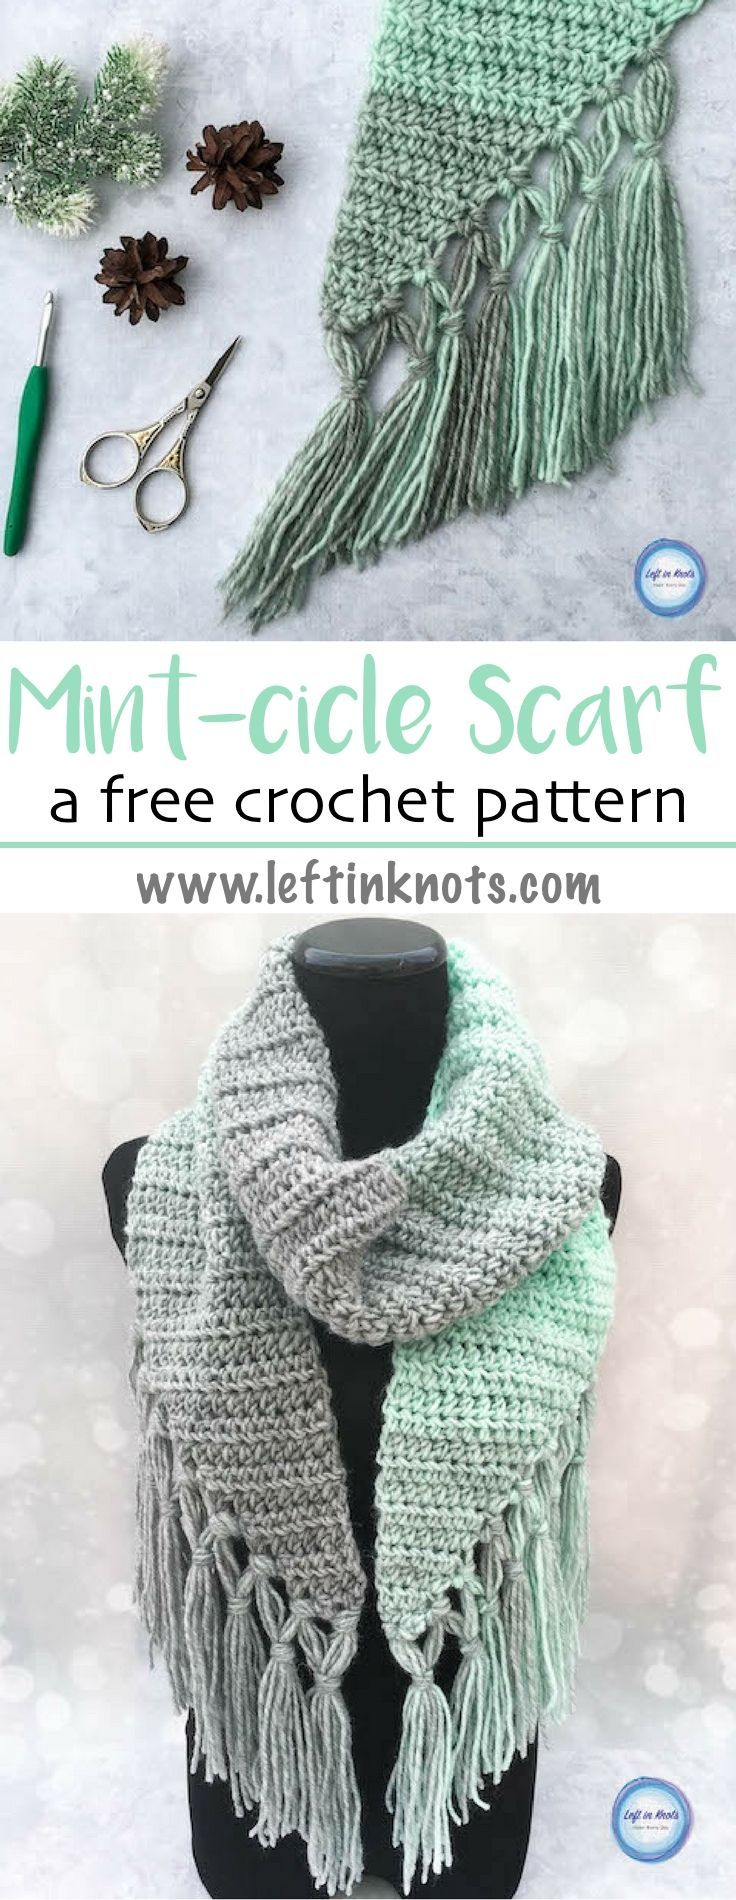 Mint-cicle Scarf Crochet Pattern | Crochet for Beginners | Pinterest ...